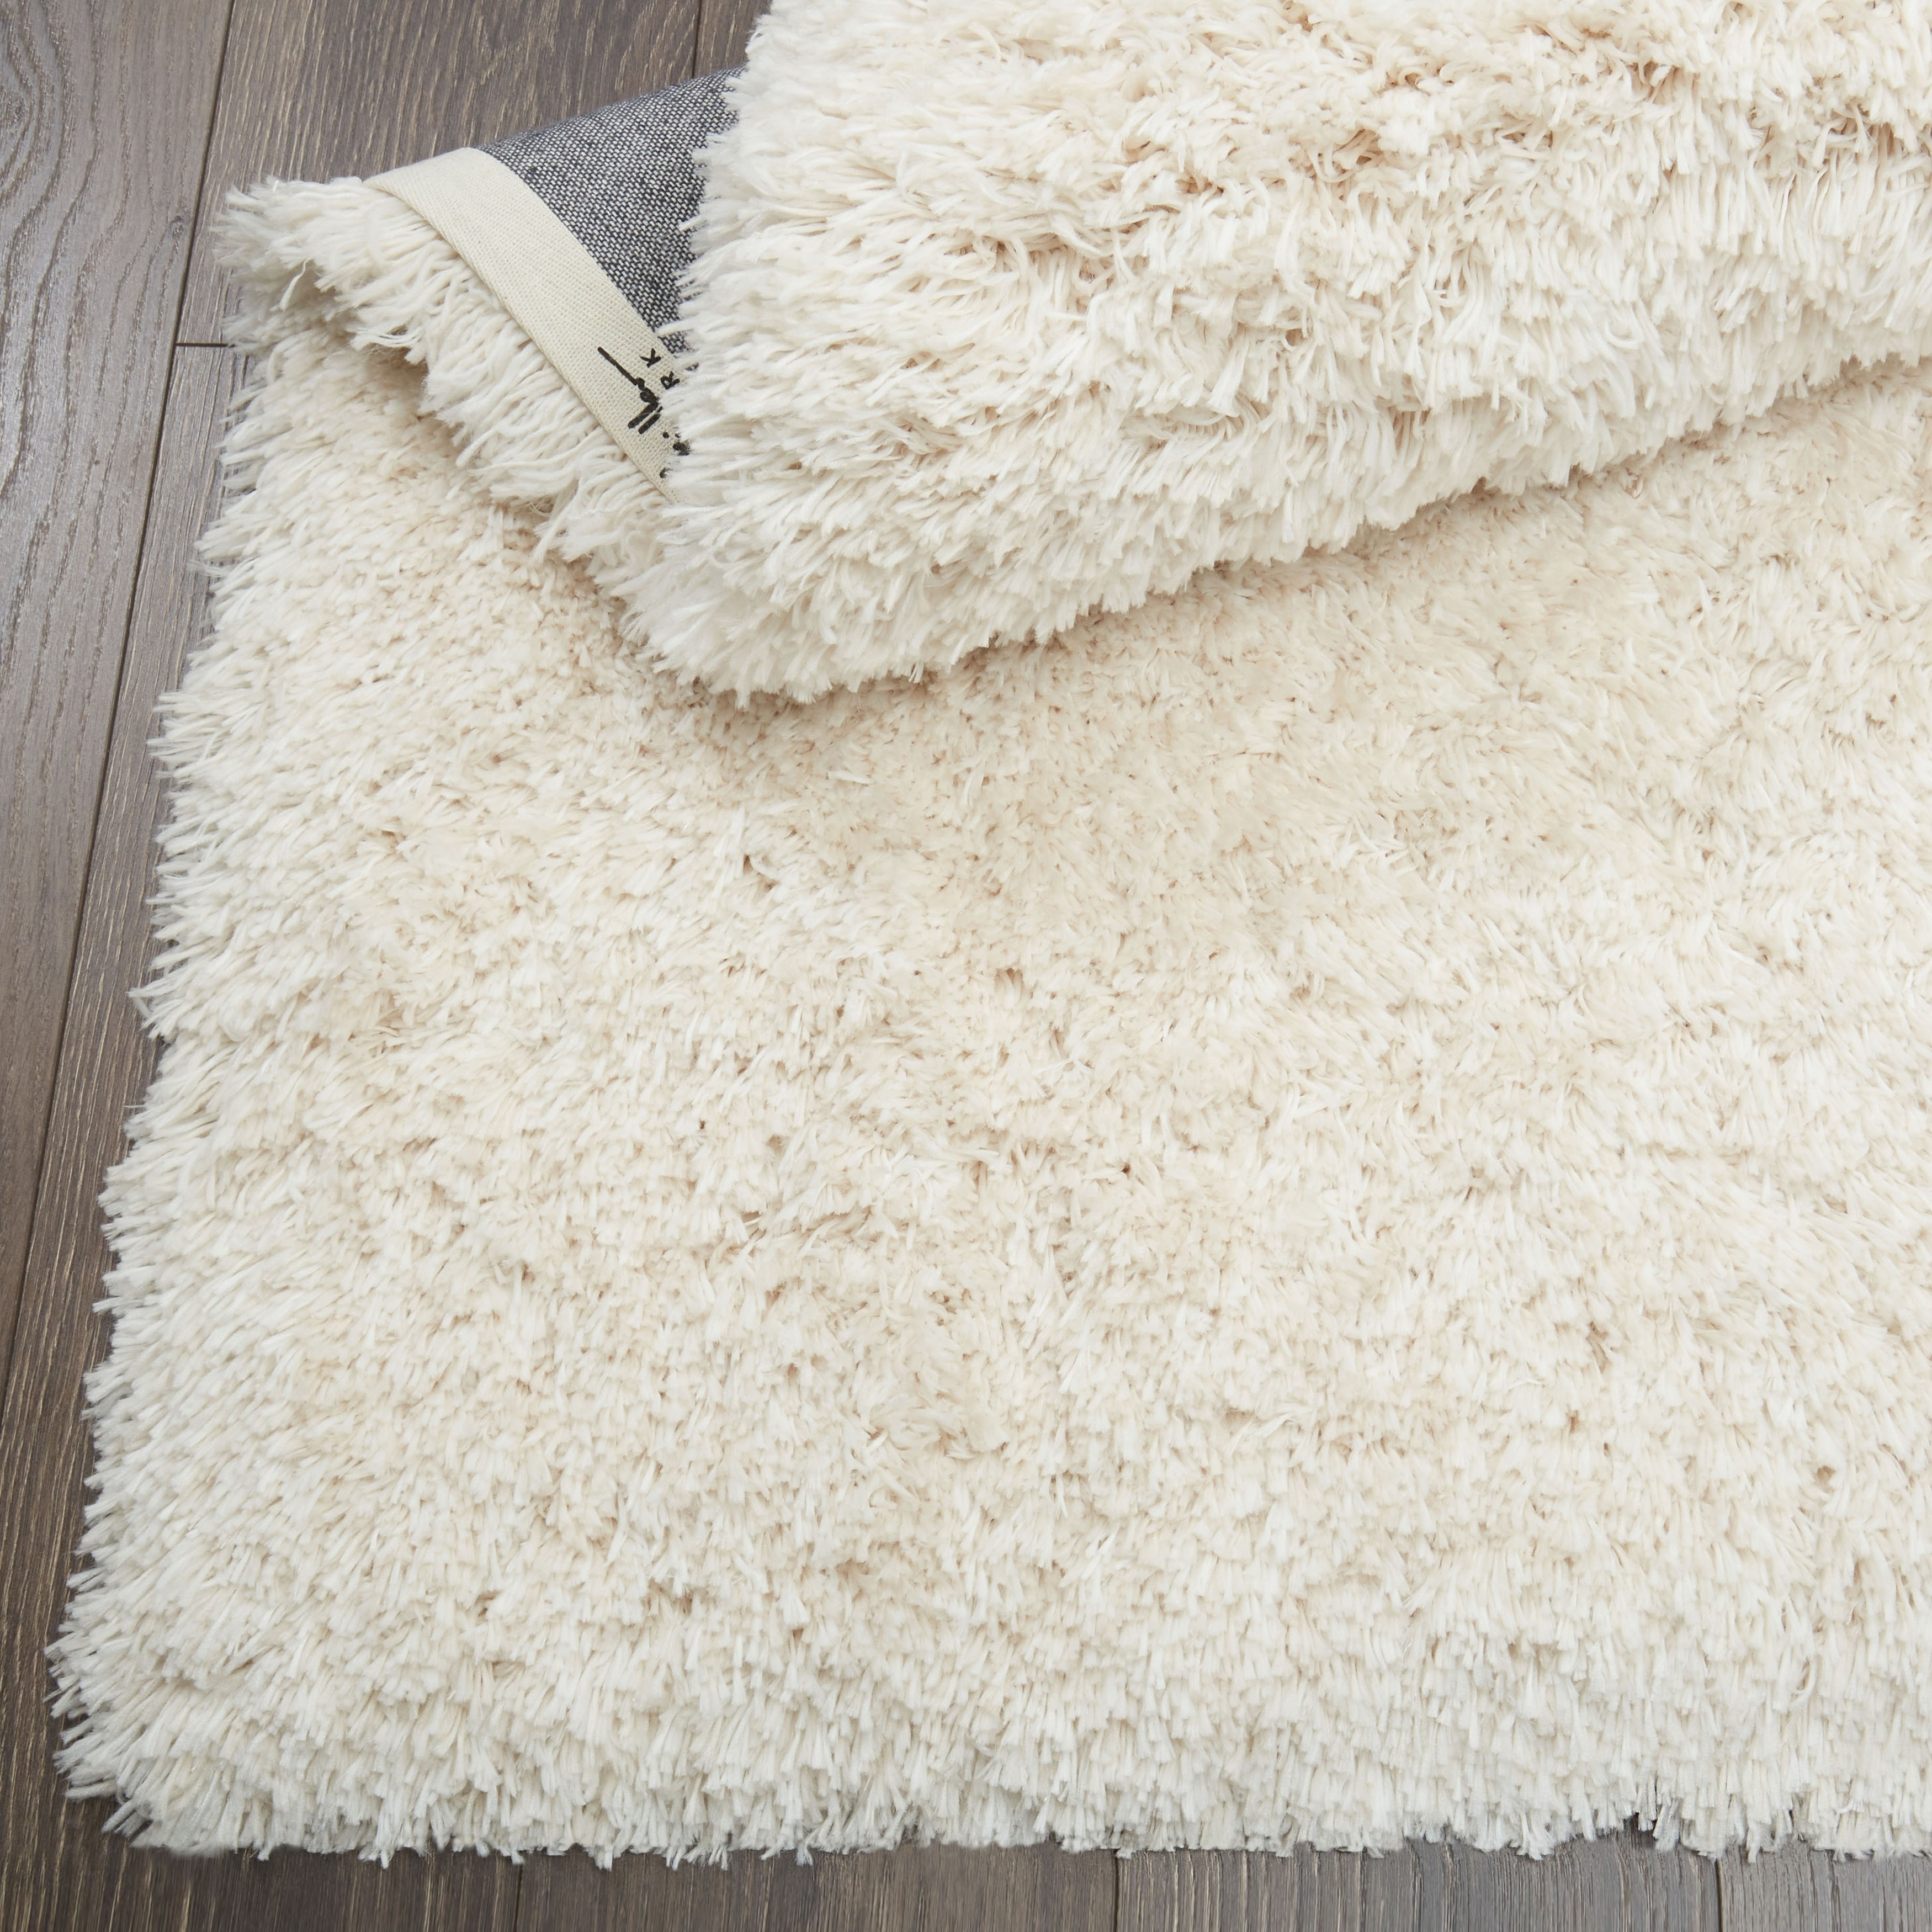 best miller of area beautiful rug parlin rugs home nicole ideas dynamix photos improvement dynamixhome by